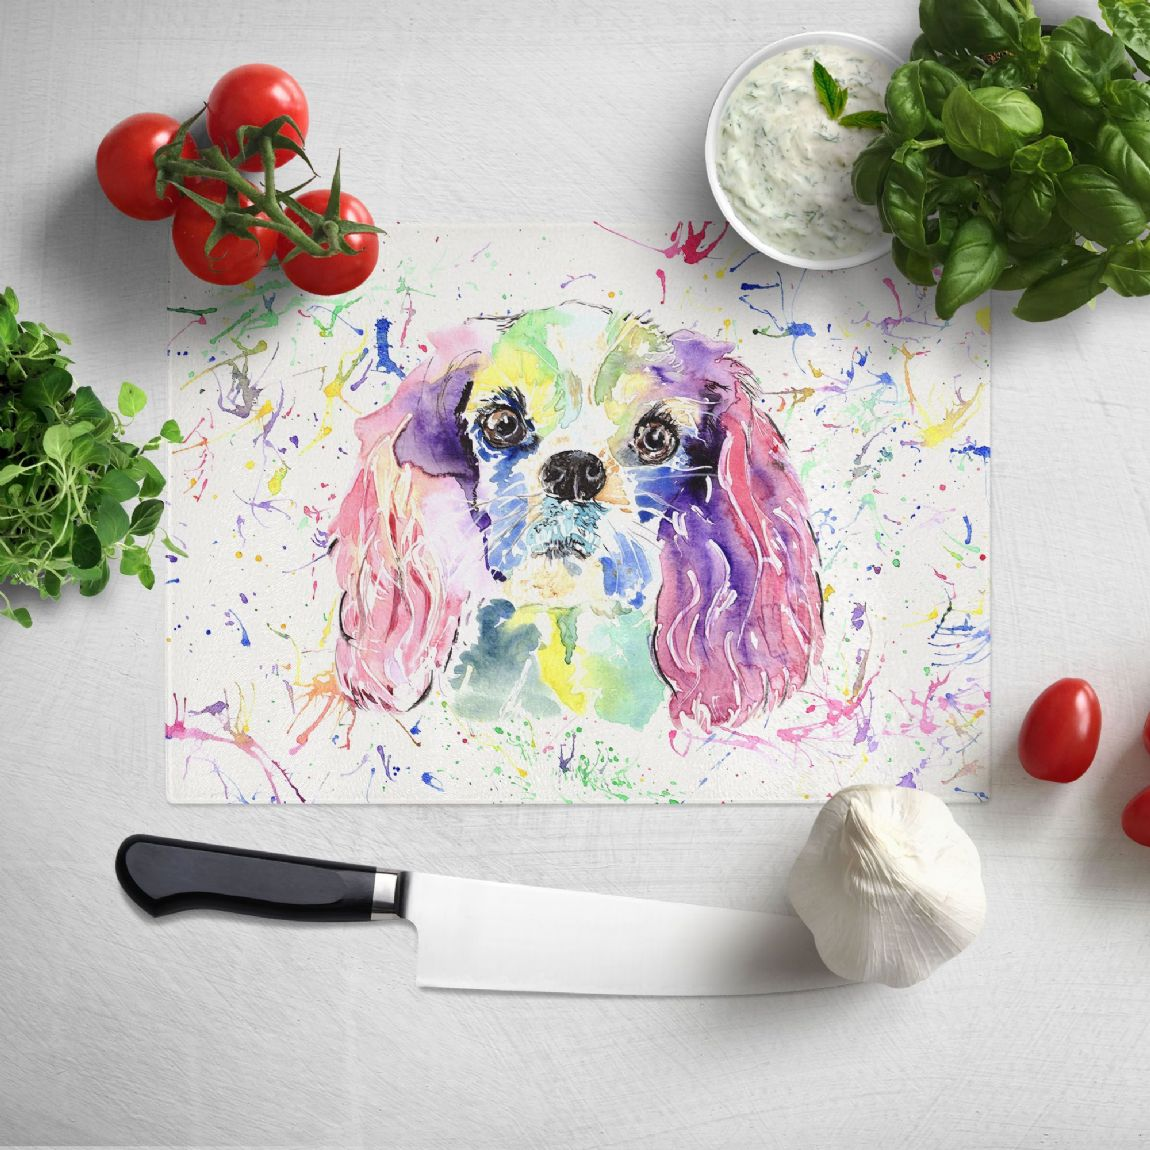 Glass worktop saver/chopping board (Cavalier King charles)